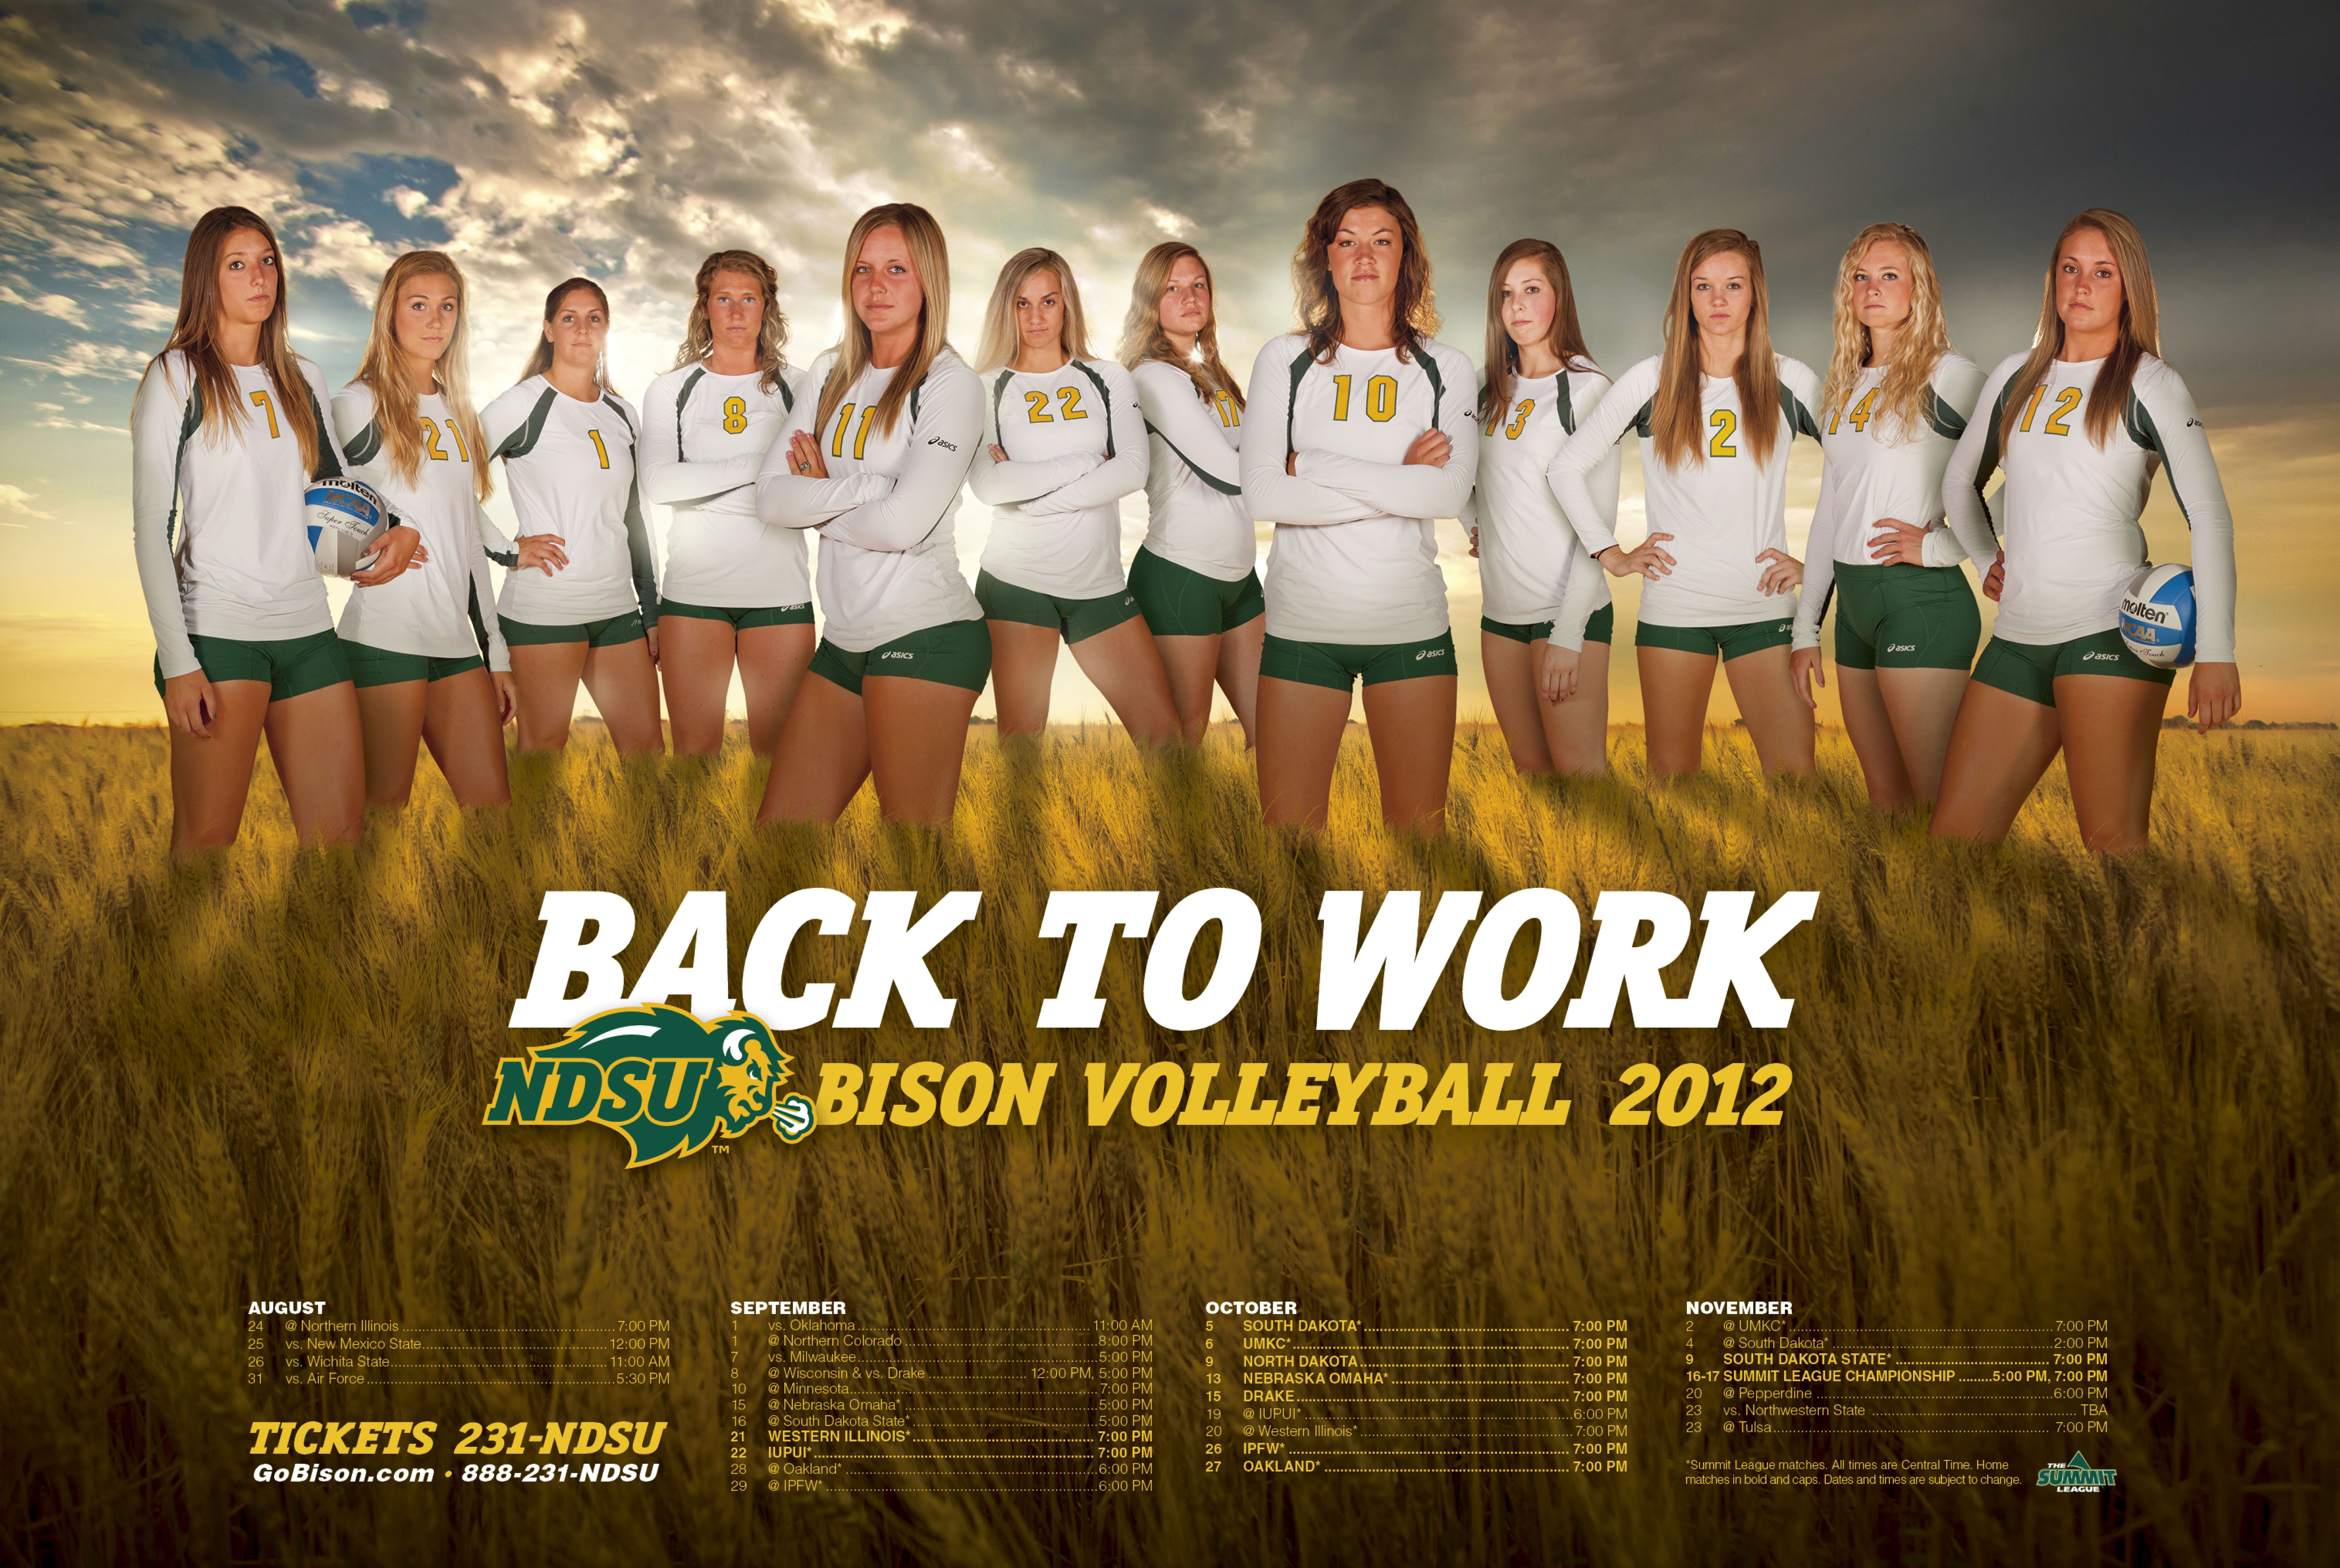 The 2012 volleyball poster posters pinterest volleyball posters volleyball and volleyball for Softball poster ideas